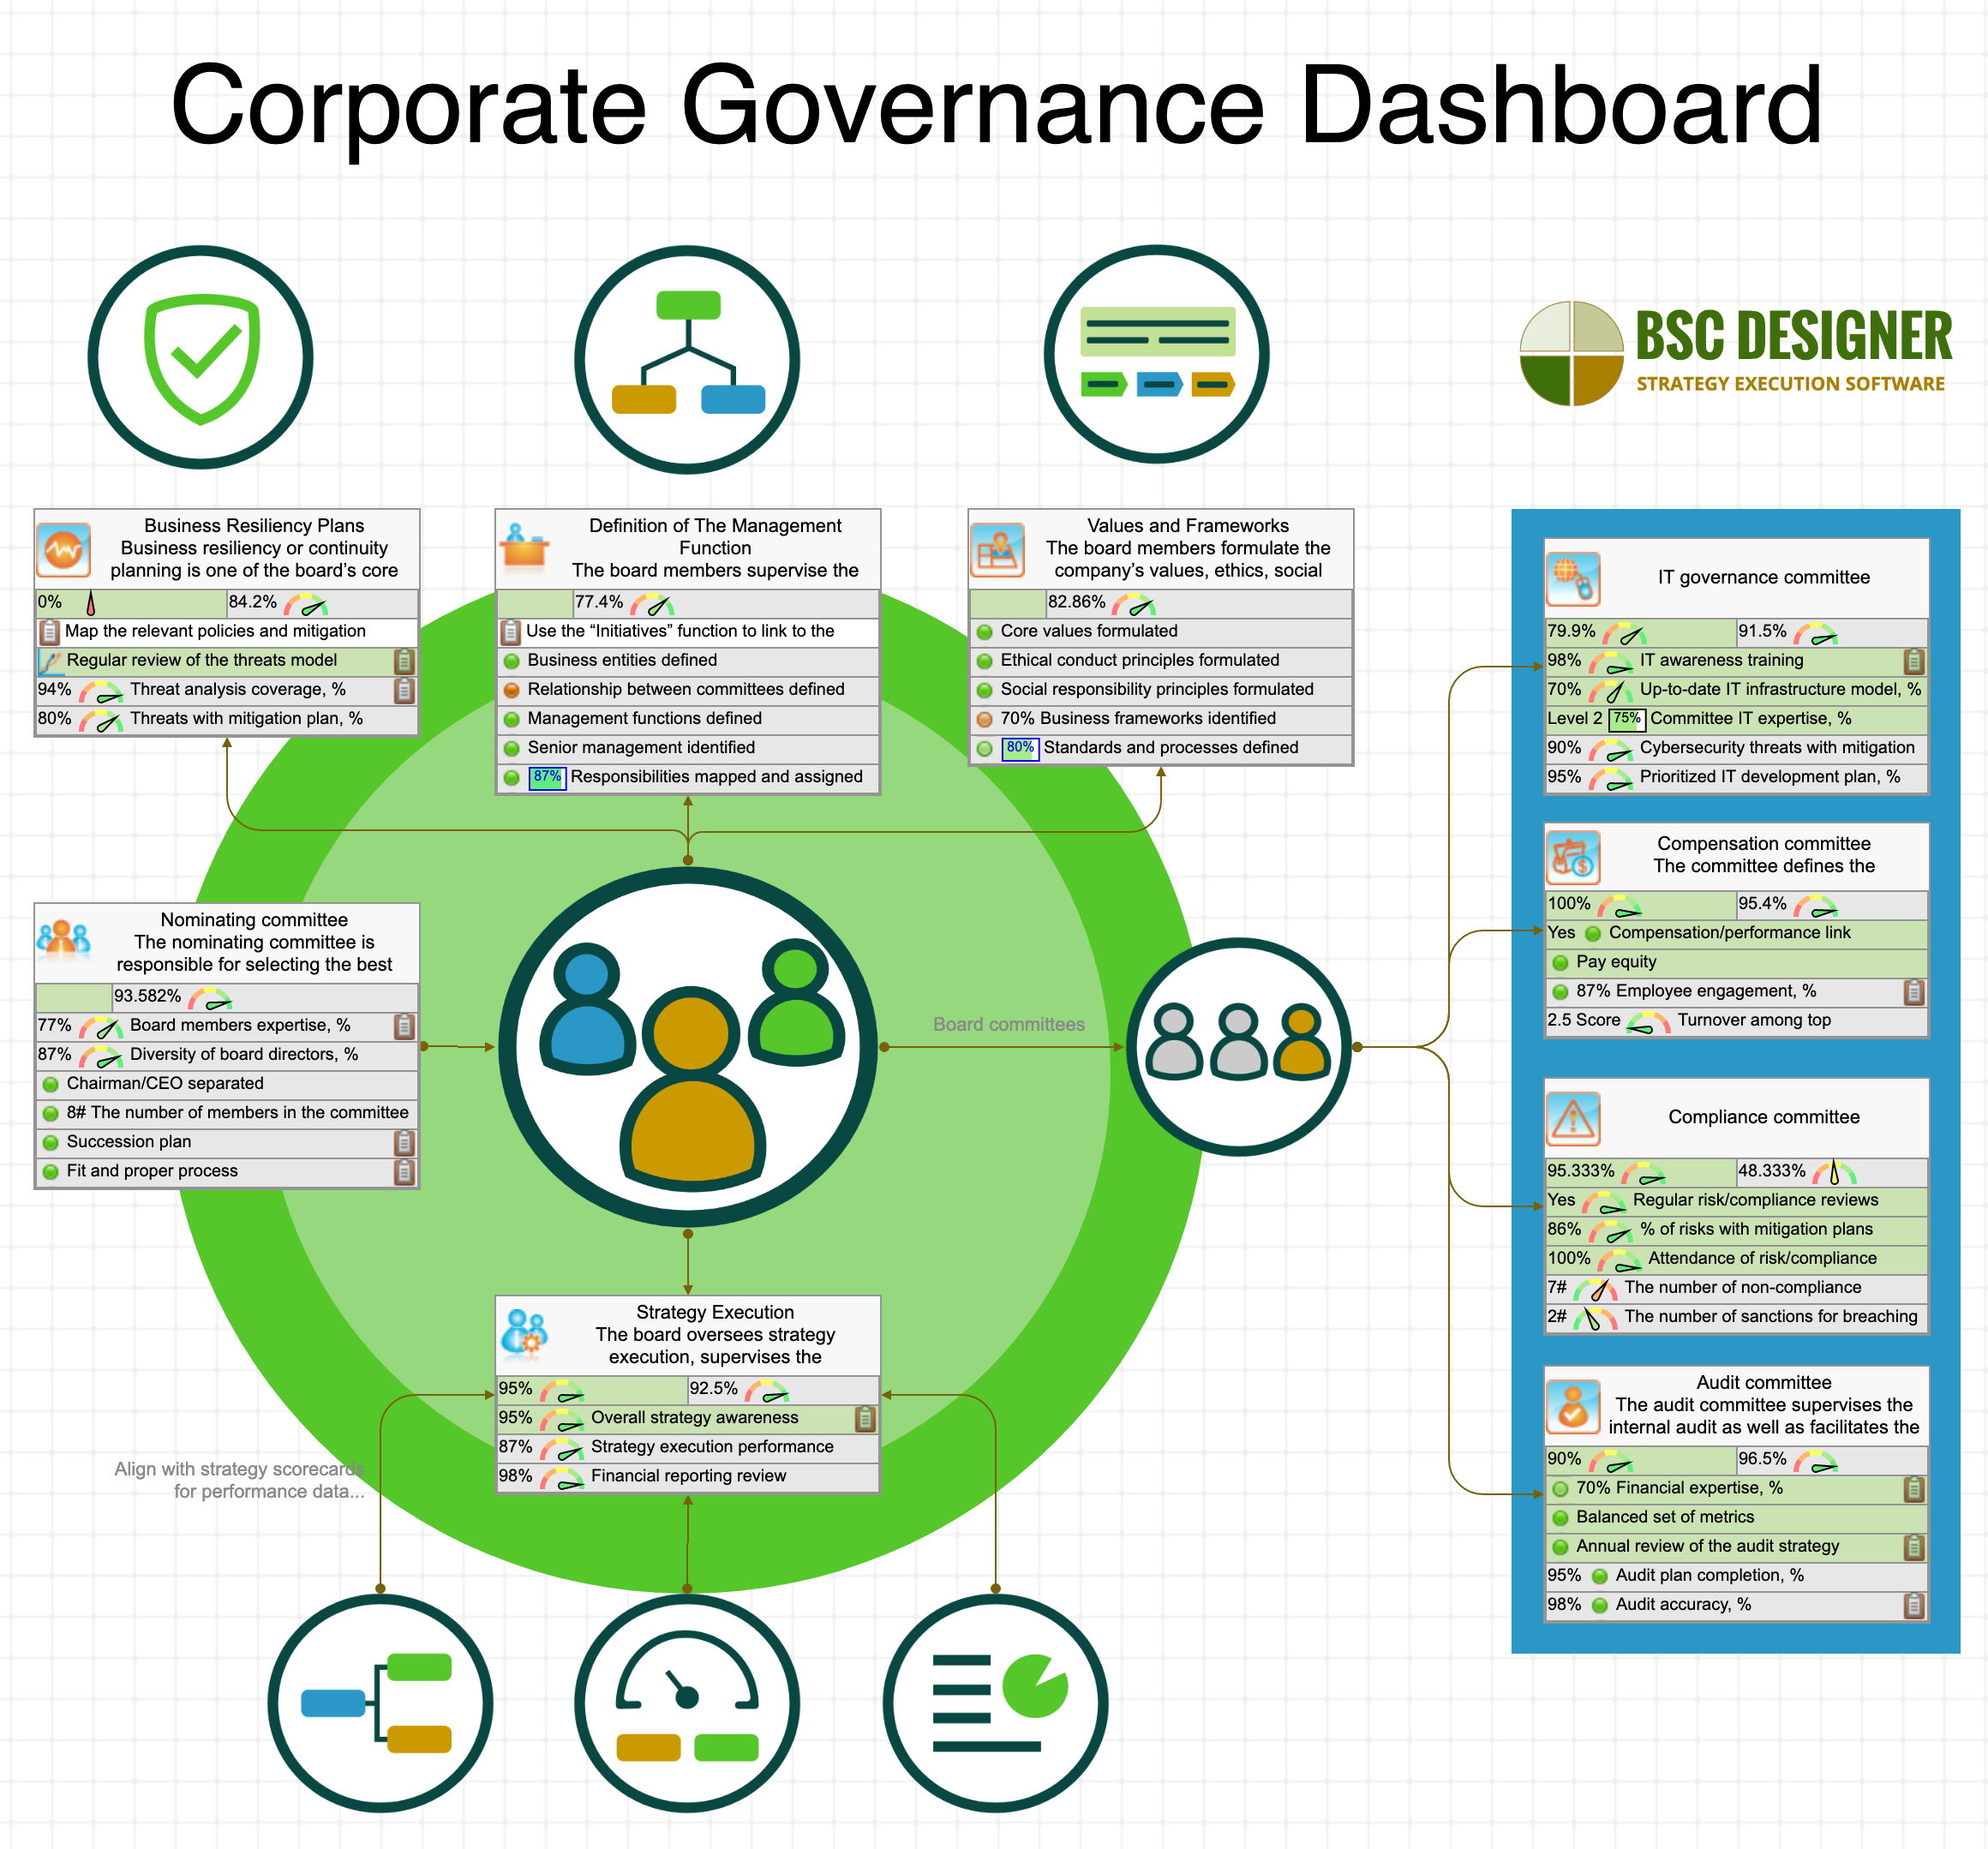 Corporate Governance Dashboard mit Kennzahlen